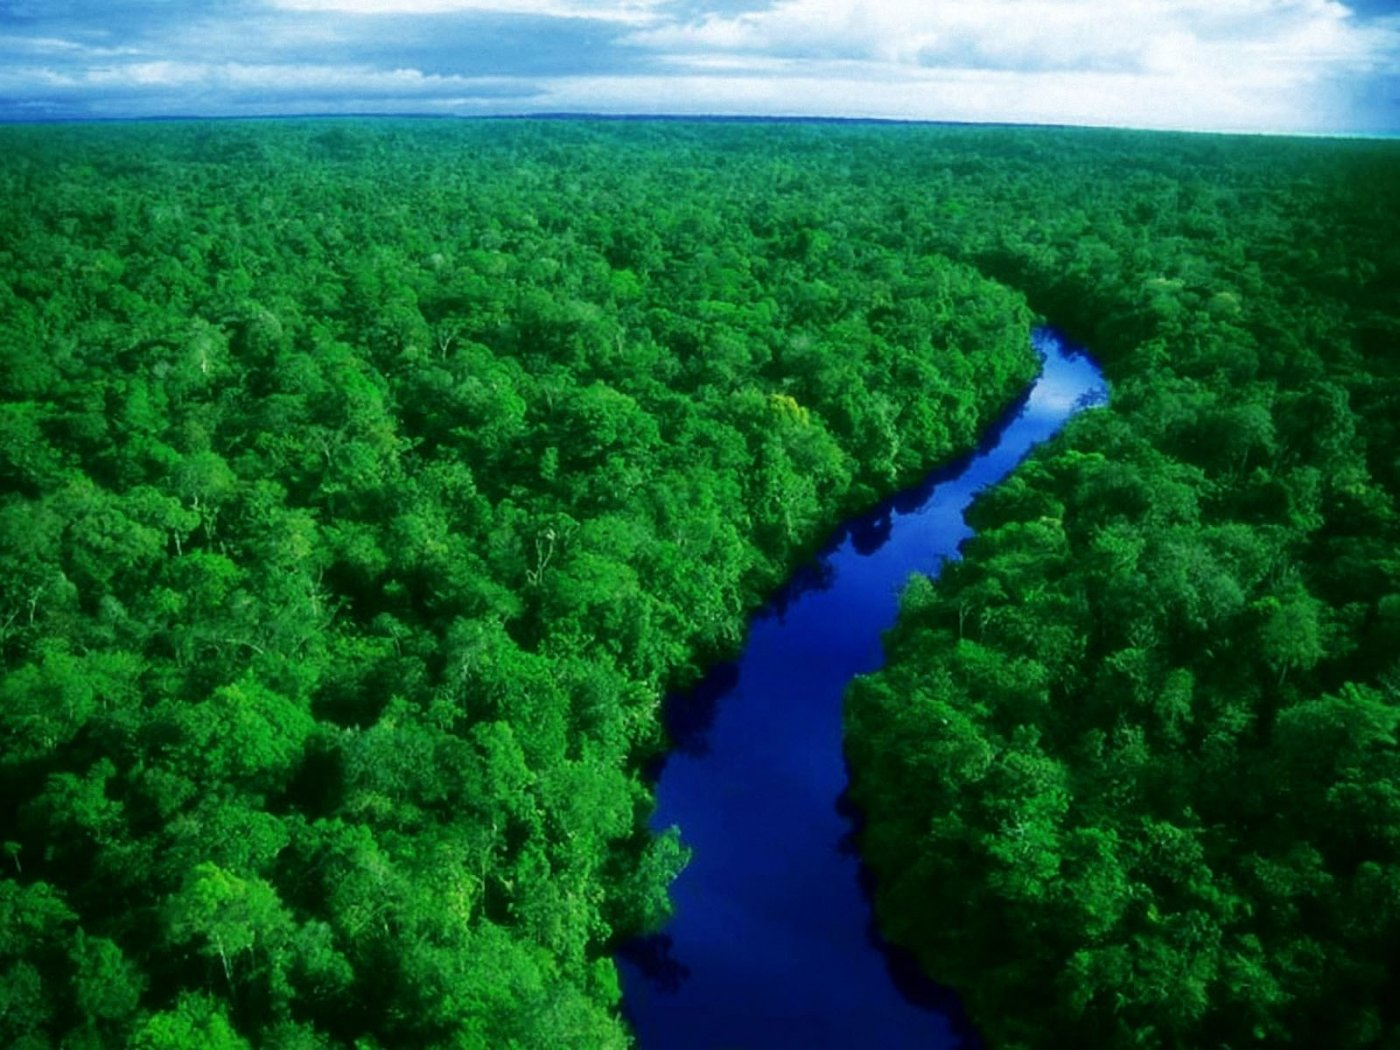 Amazon Forest 1400x1050 WallpapersAmazon Forest 1400x1050 Wallpapers 1400x1050